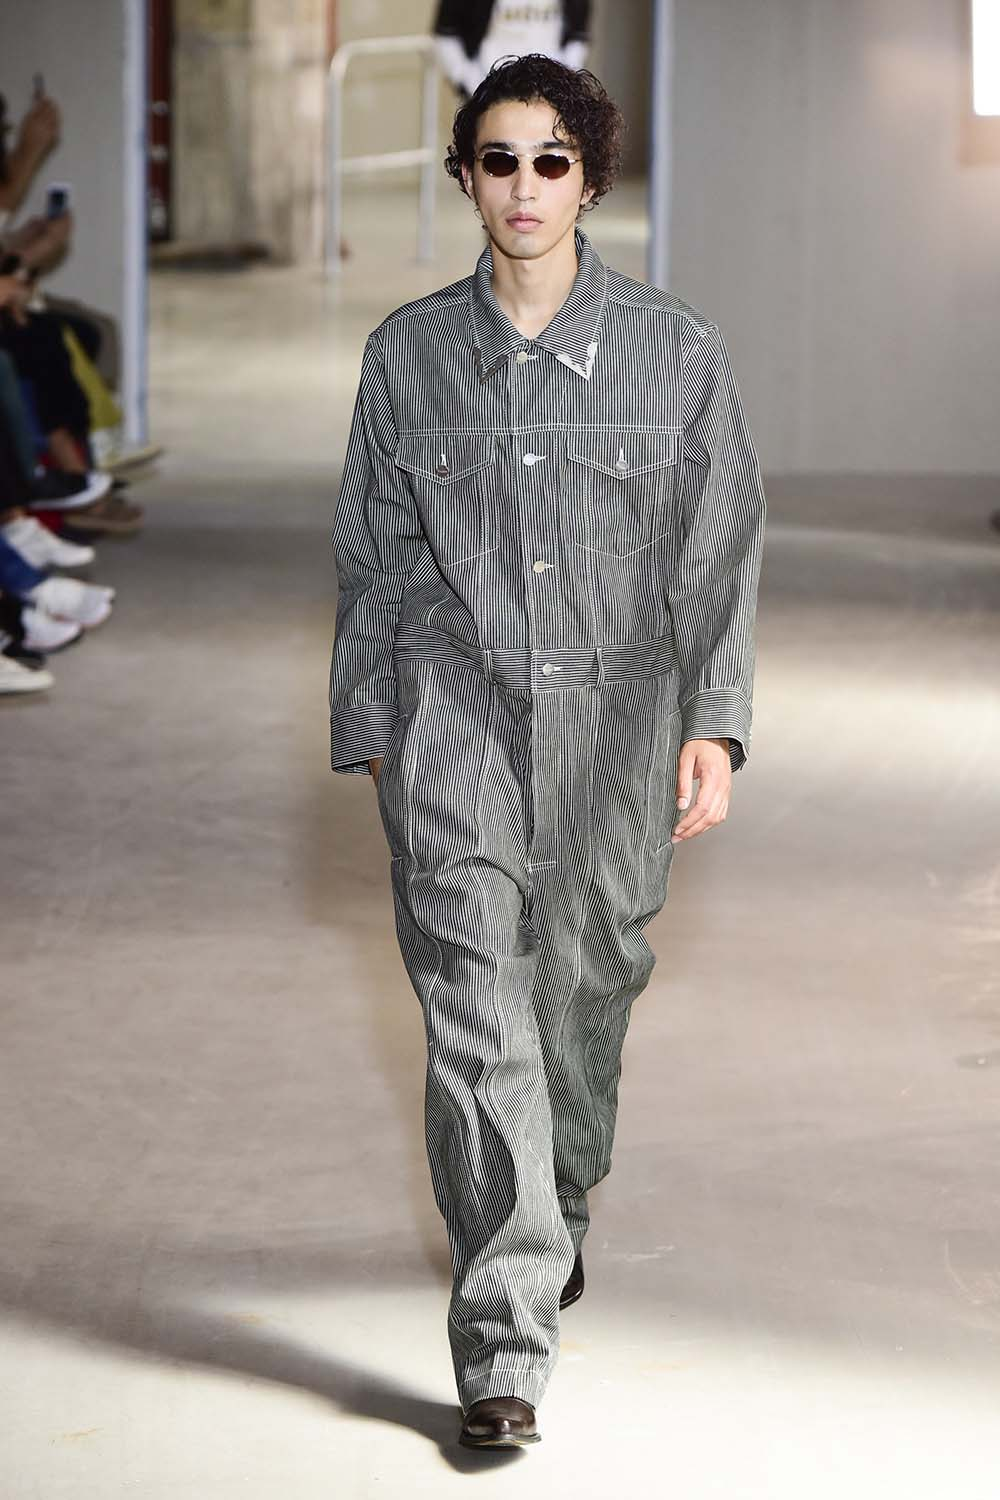 Etudes Paris Fashion Week Men's SS19 - Sagaboi - Look 34